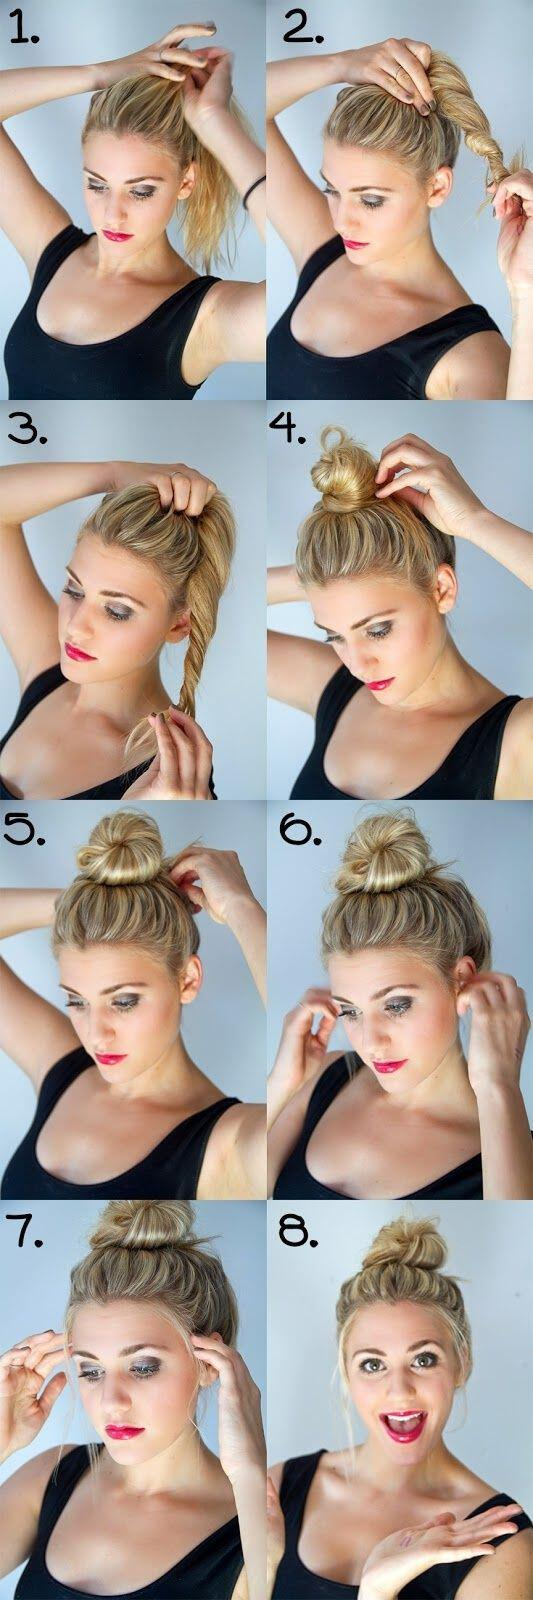 15 gorgeous and easy beach hairstyles to rock this summer 2 - 15 Gorgeous and Easy Beach Hairstyles to rock this summer